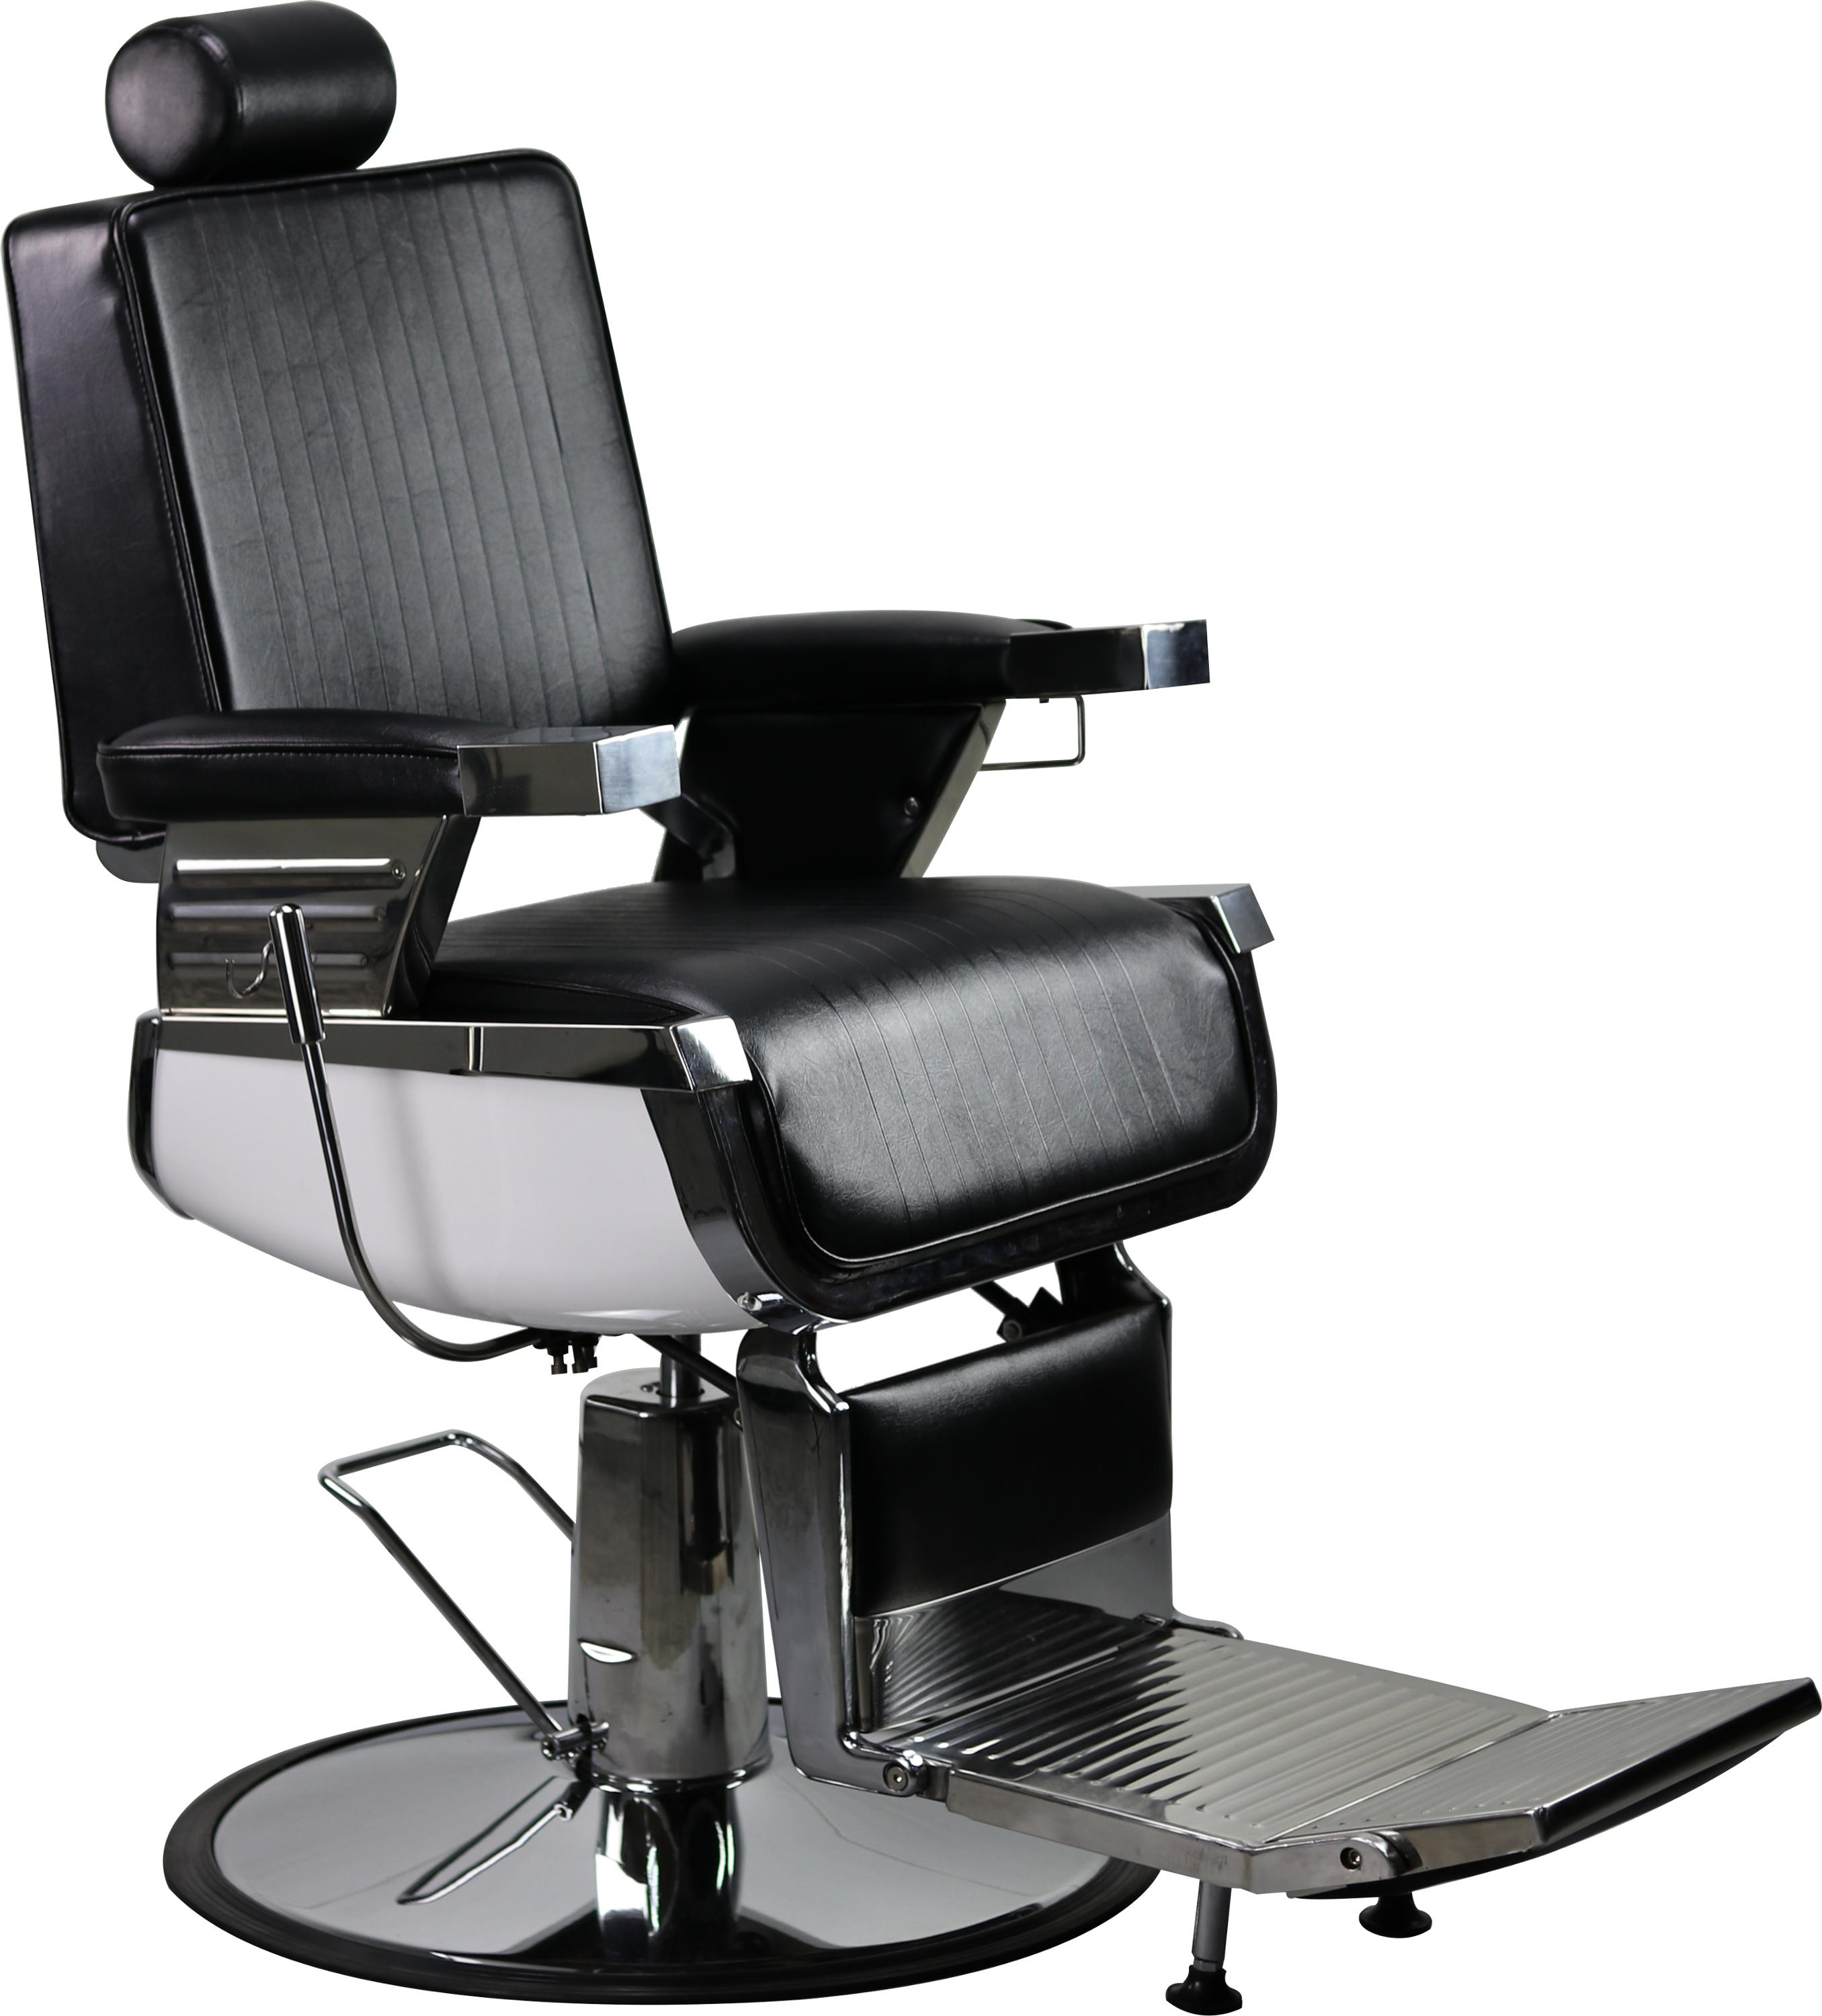 Stainless Steel Heavy Duty Hydraulic Recline Barber Chair